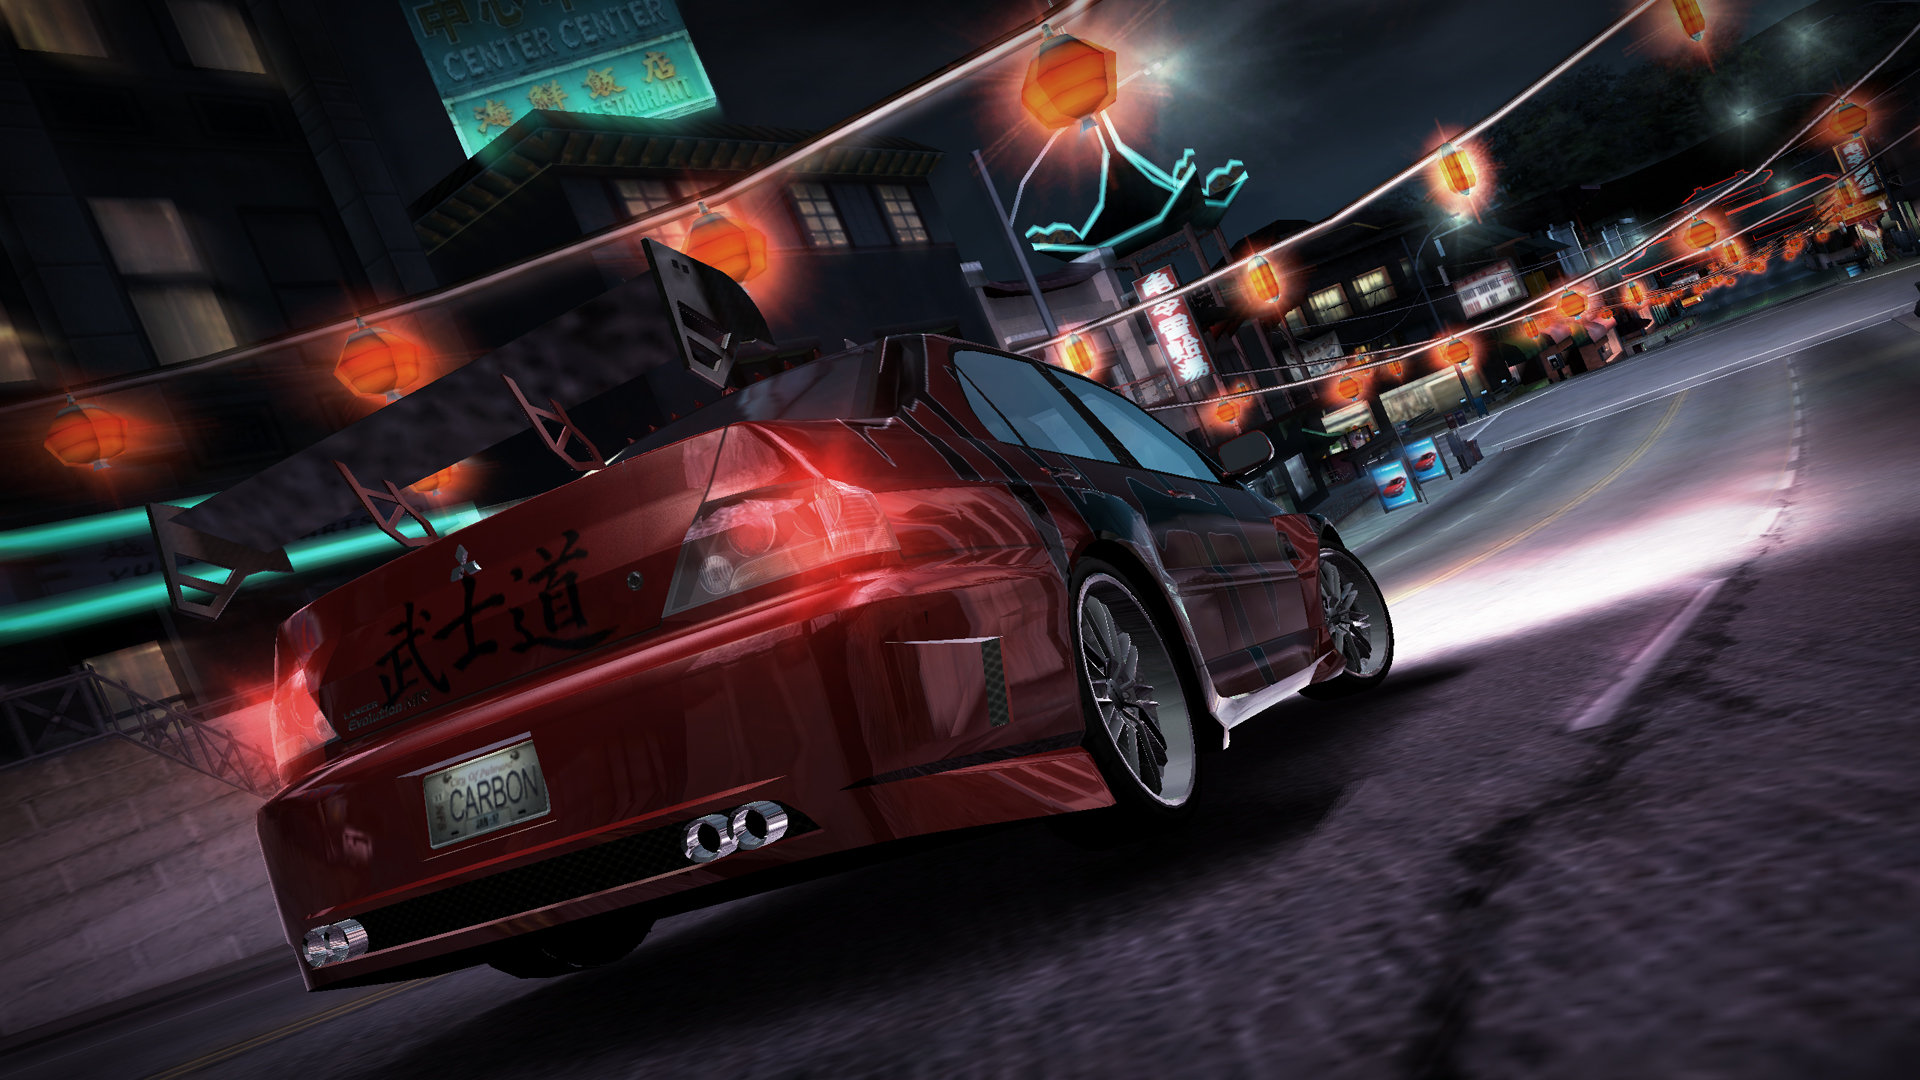 Need For Speed Carbon Cars Wallpapers Descargar Need For Speed Carbono Zofti Descargas Gratis